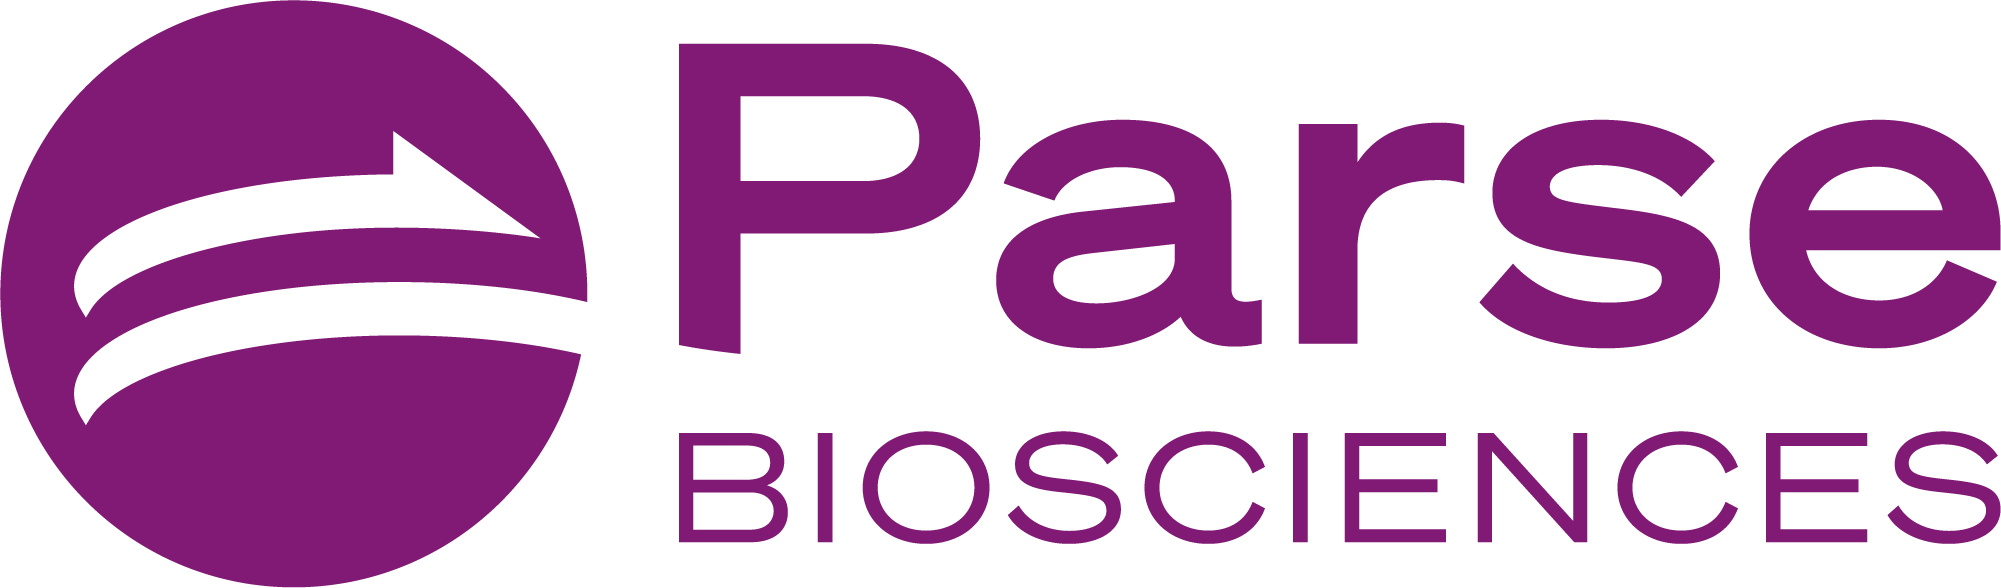 Parse Biosciences Help Center home page